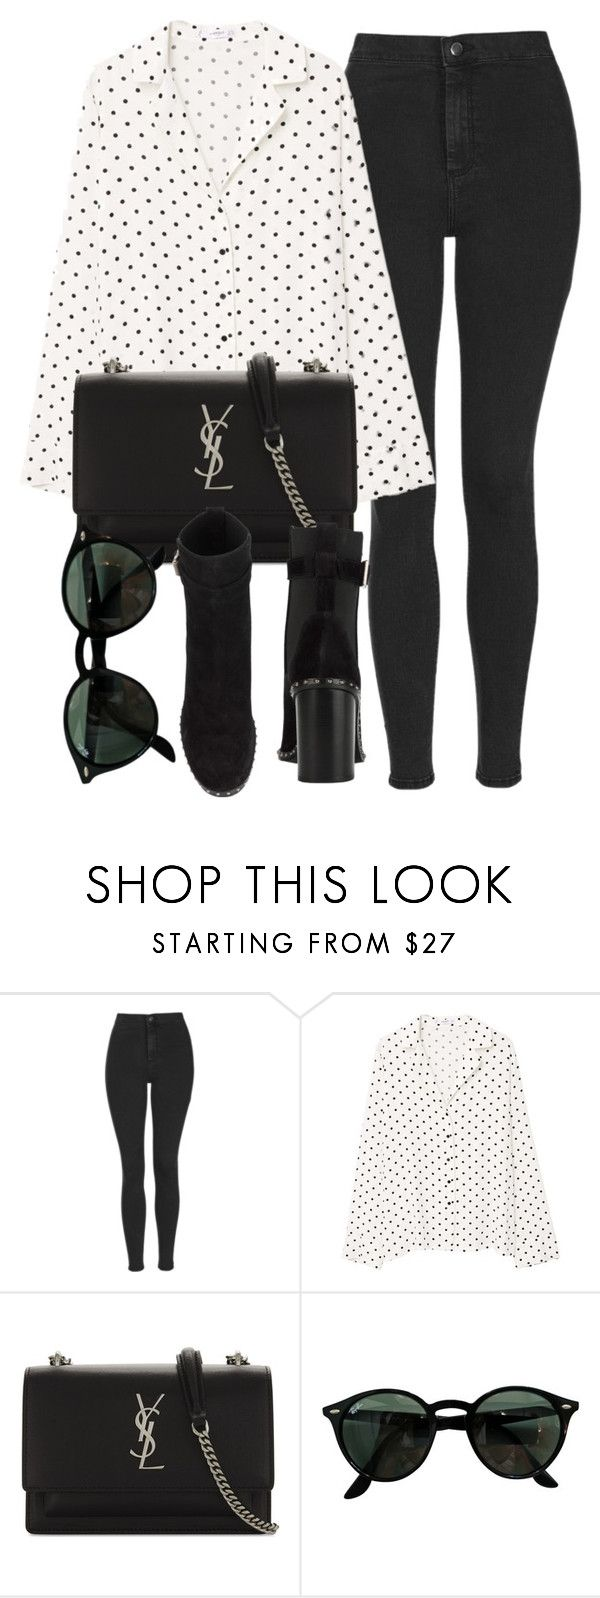 """Untitled #7101"" by laurenmboot ❤ liked on Polyvore featuring Topshop, MANGO, Yves Saint Laurent, Ray-Ban and rag & bone"